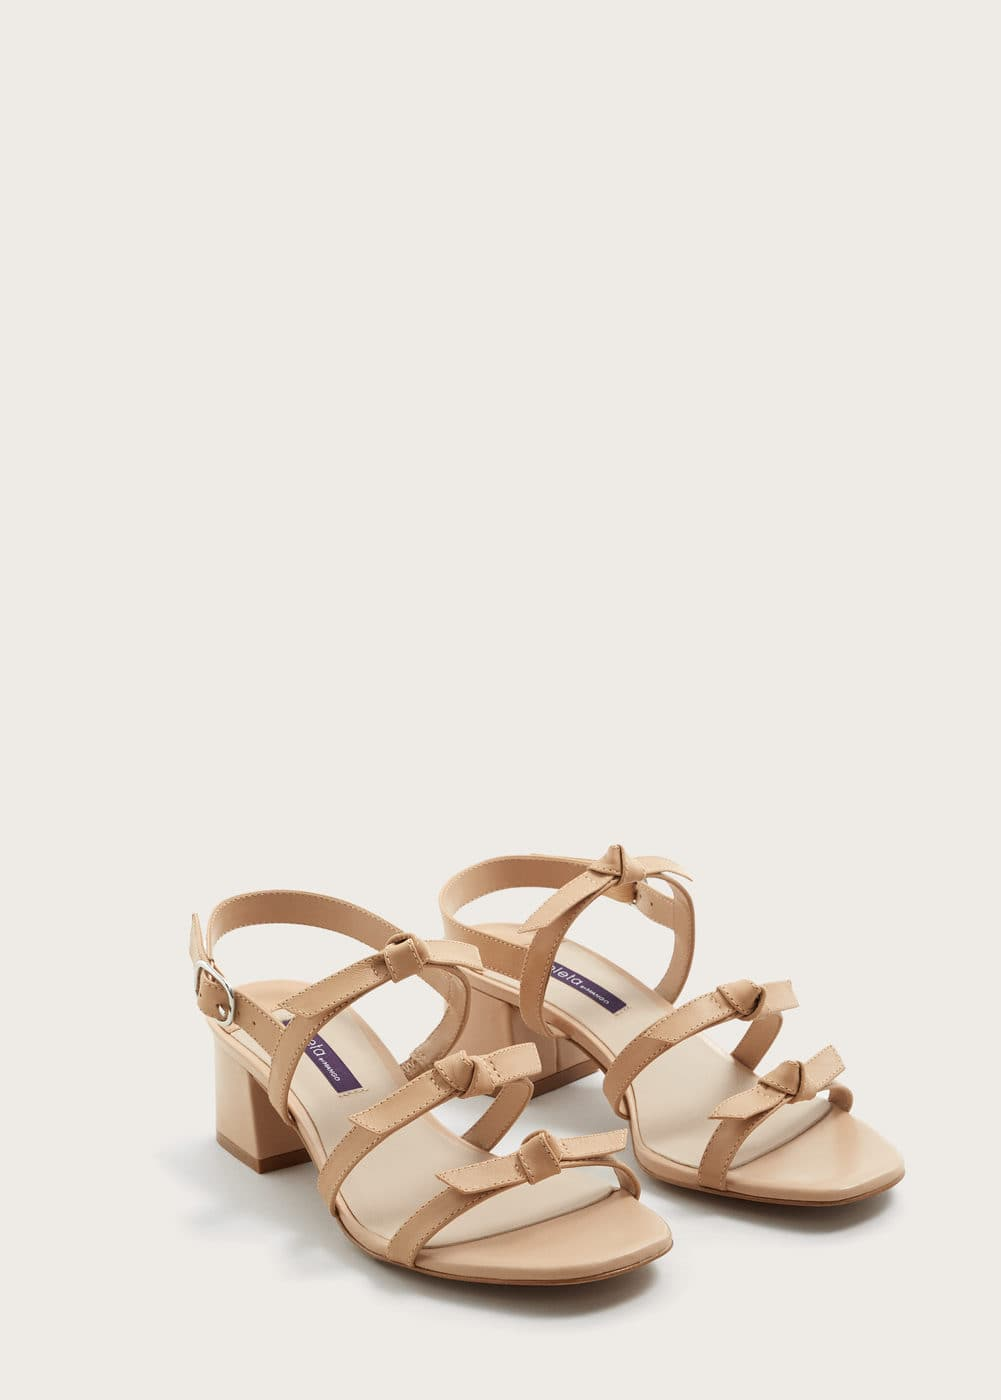 Bows leather sandals | VIOLETA BY MNG